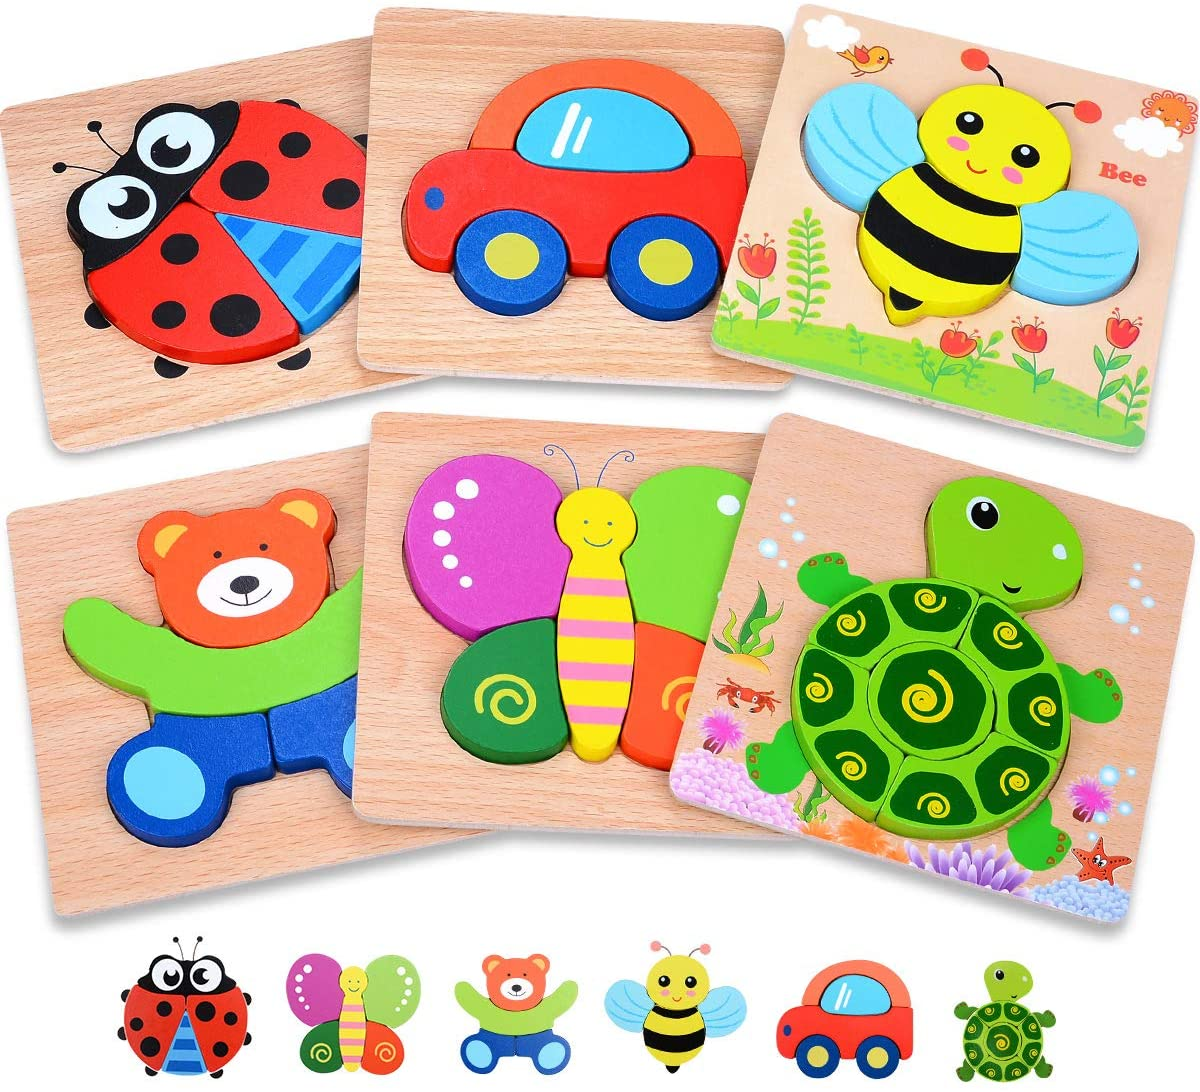 cute wooden puzzles for toddler